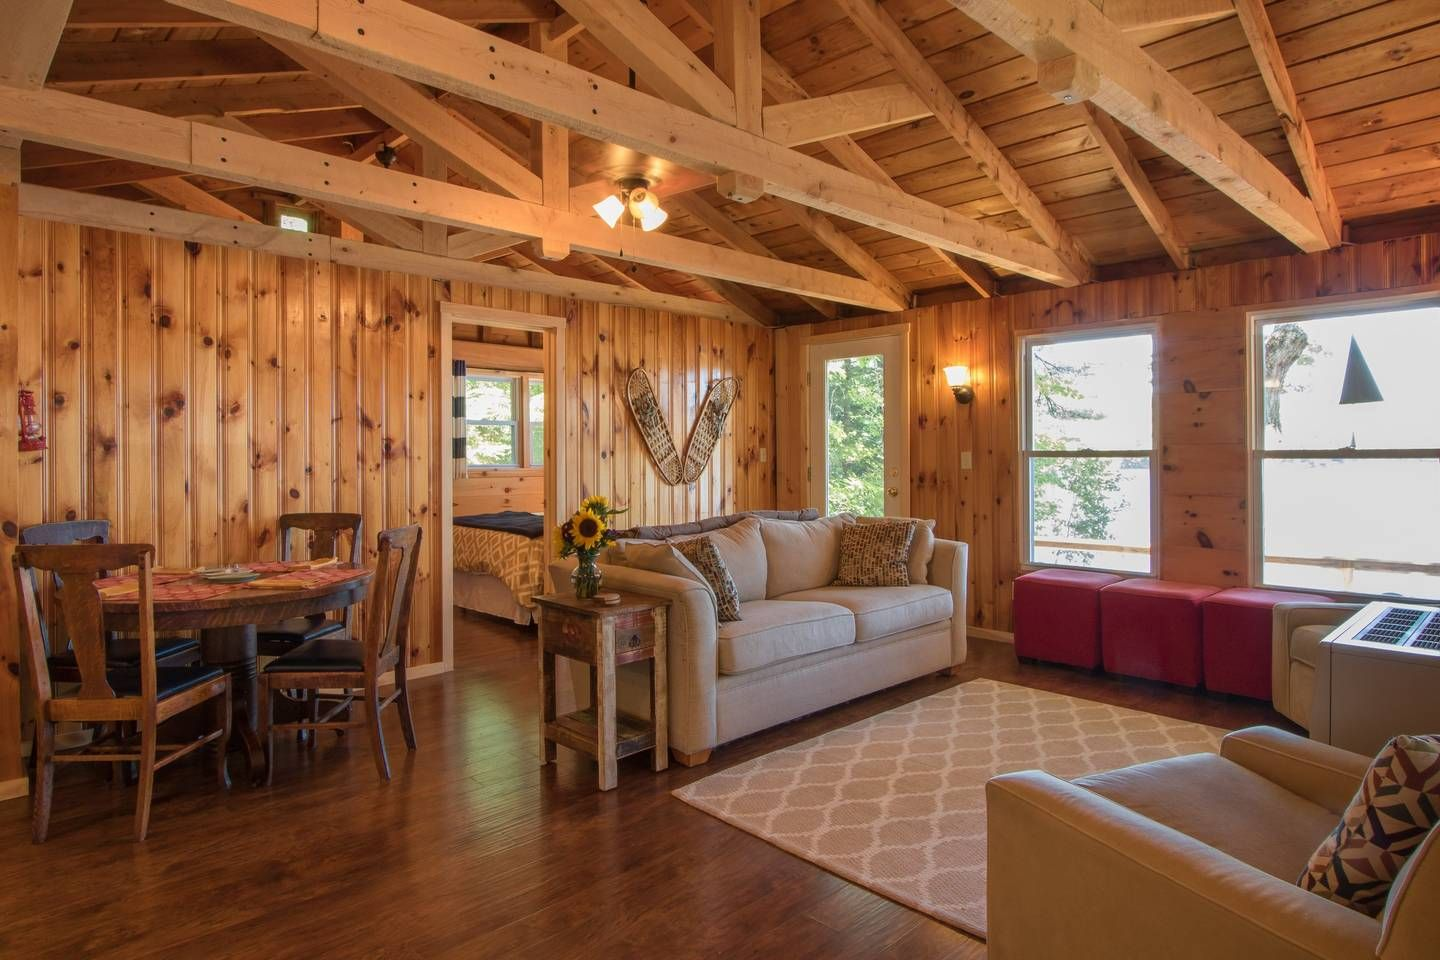 cabin experience romantic rental sunsets for in maine this on england cabins amazing lake rent views pin new mountain moosehead lakefront and